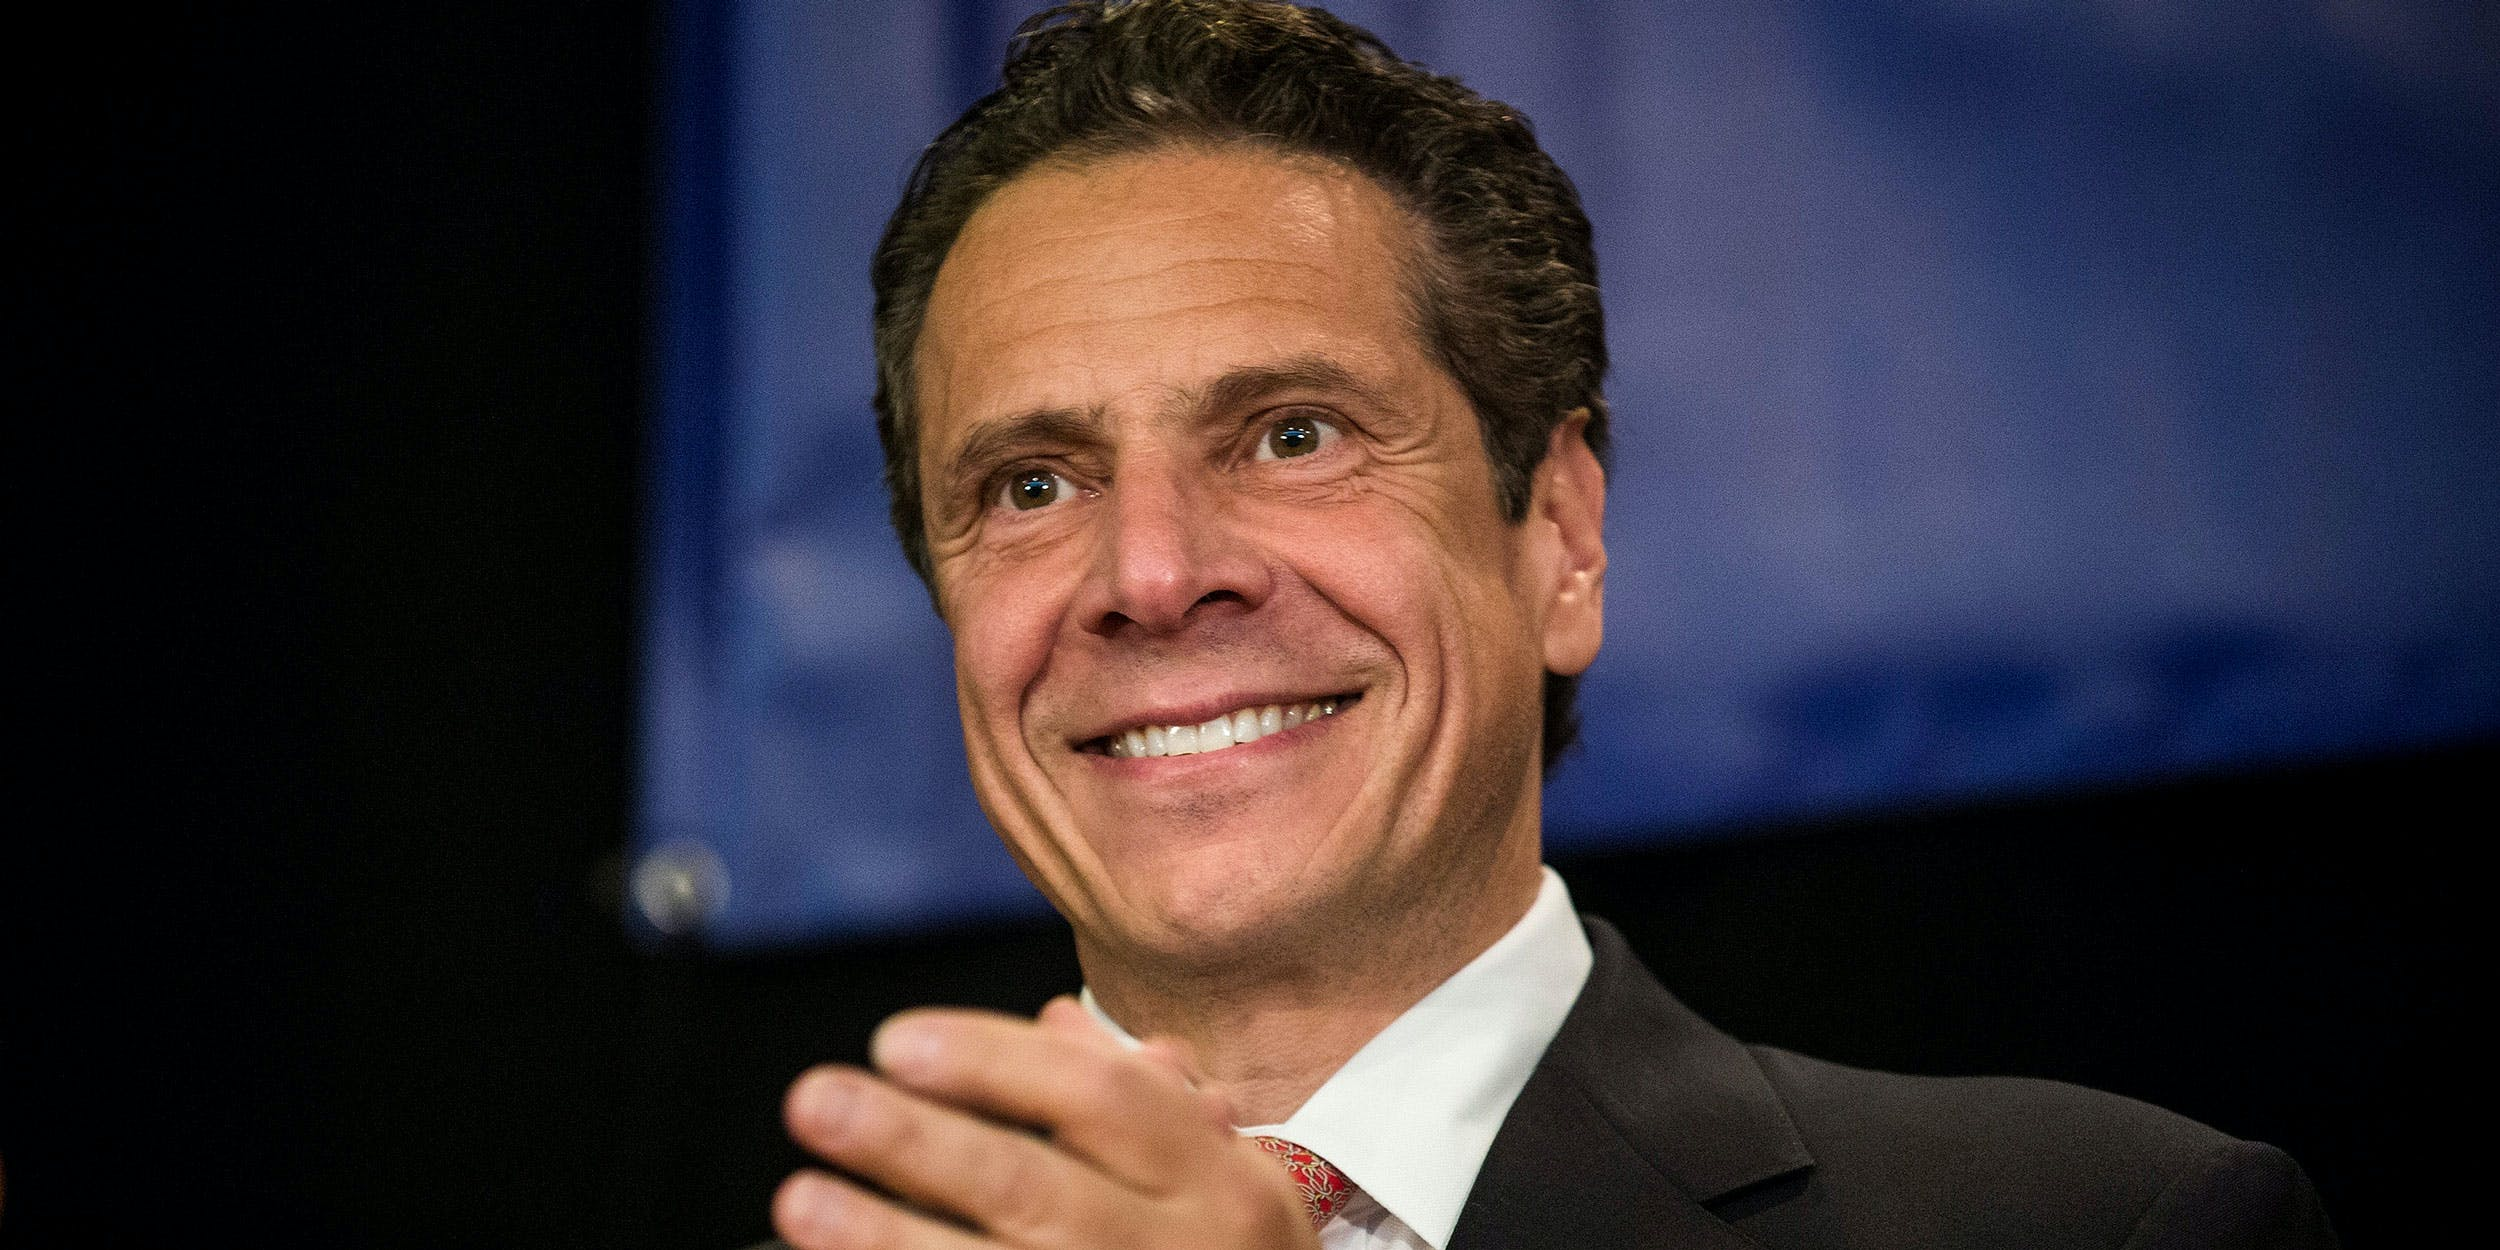 Governor Andrew Cuomo speaks to a crowd during a reelection campaign event in 2014. Cuomo, who once called marijuana a gateway drug, has recently received donations of nearly $100,000 from two of the state's largest medical cannabis companies during his 2018 campaign.